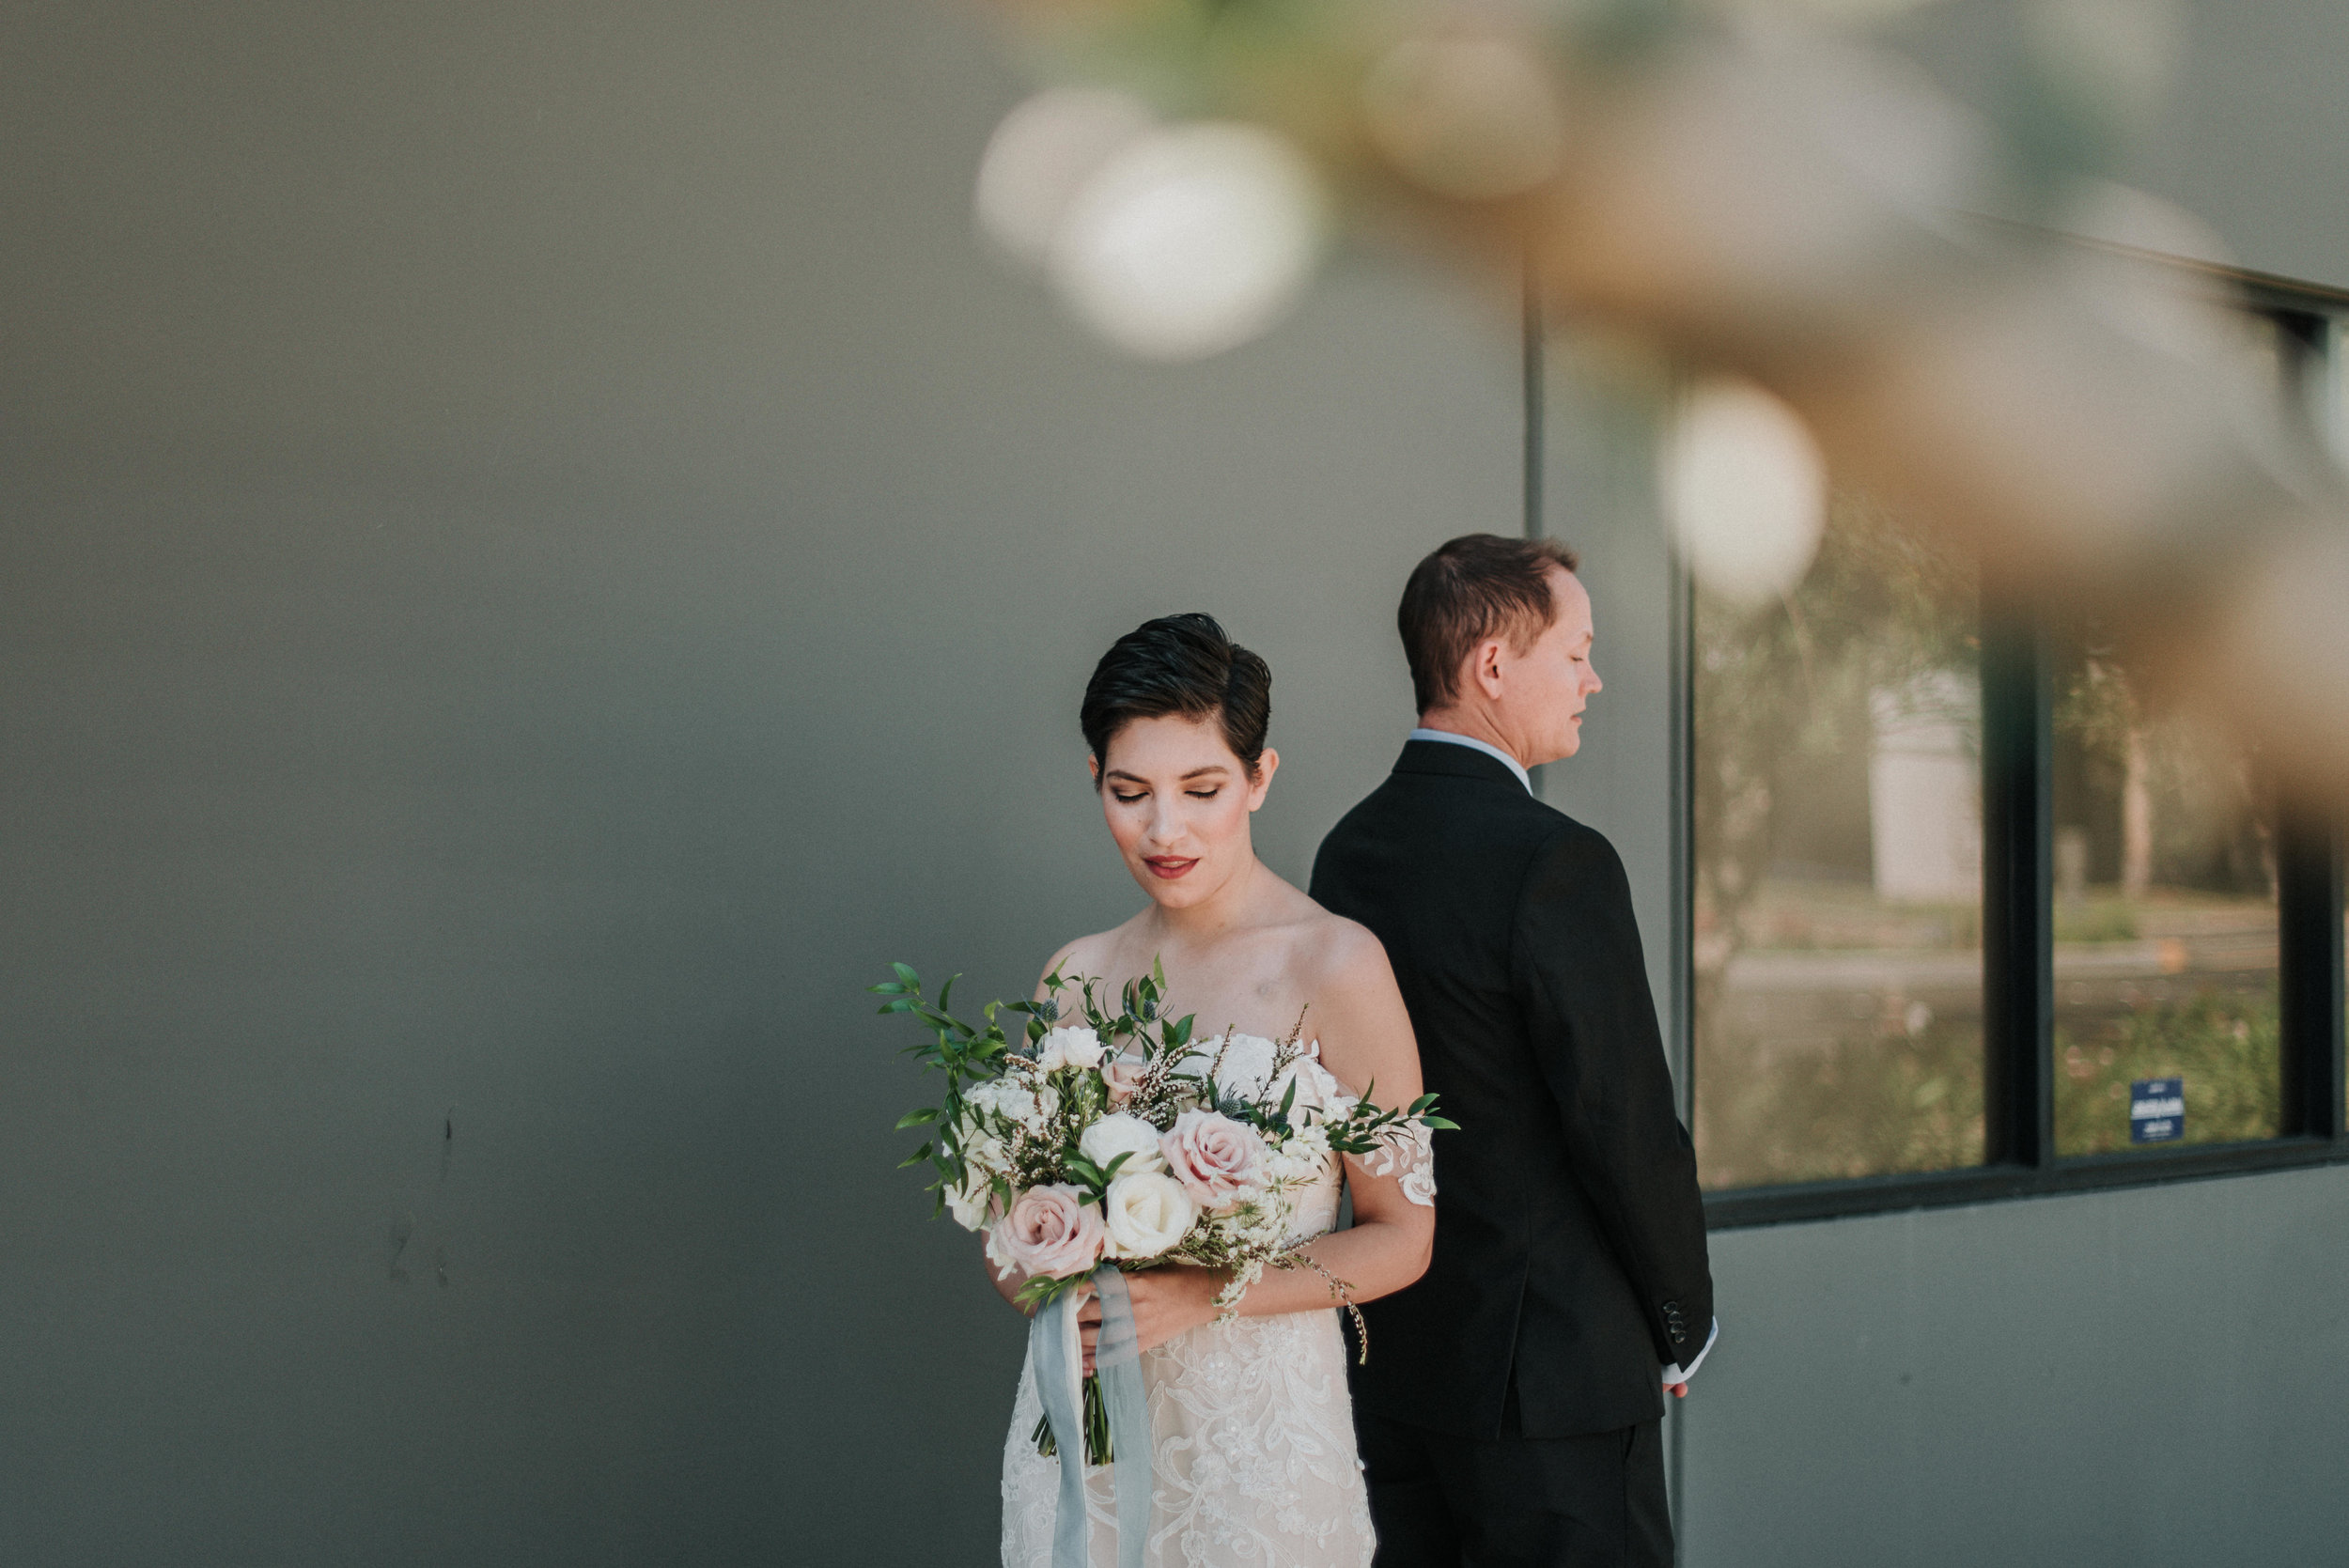 2019-07-21_Danielle_and_Brandon_-_Married_-_Costa_Mesa-106.jpg